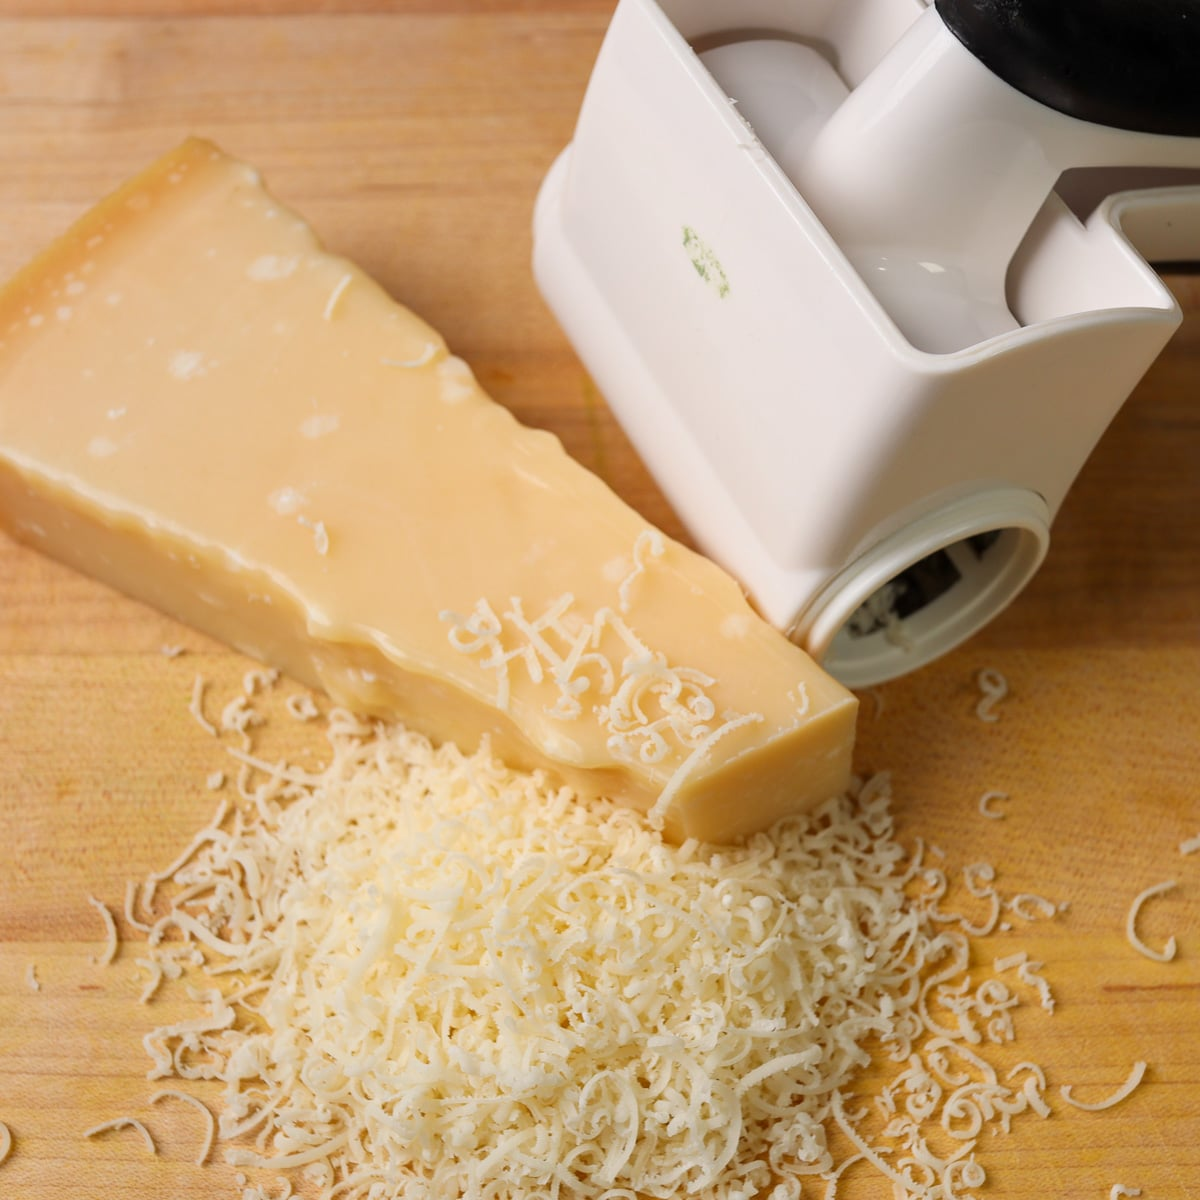 fresh grated parmesan cheese on a cutting board